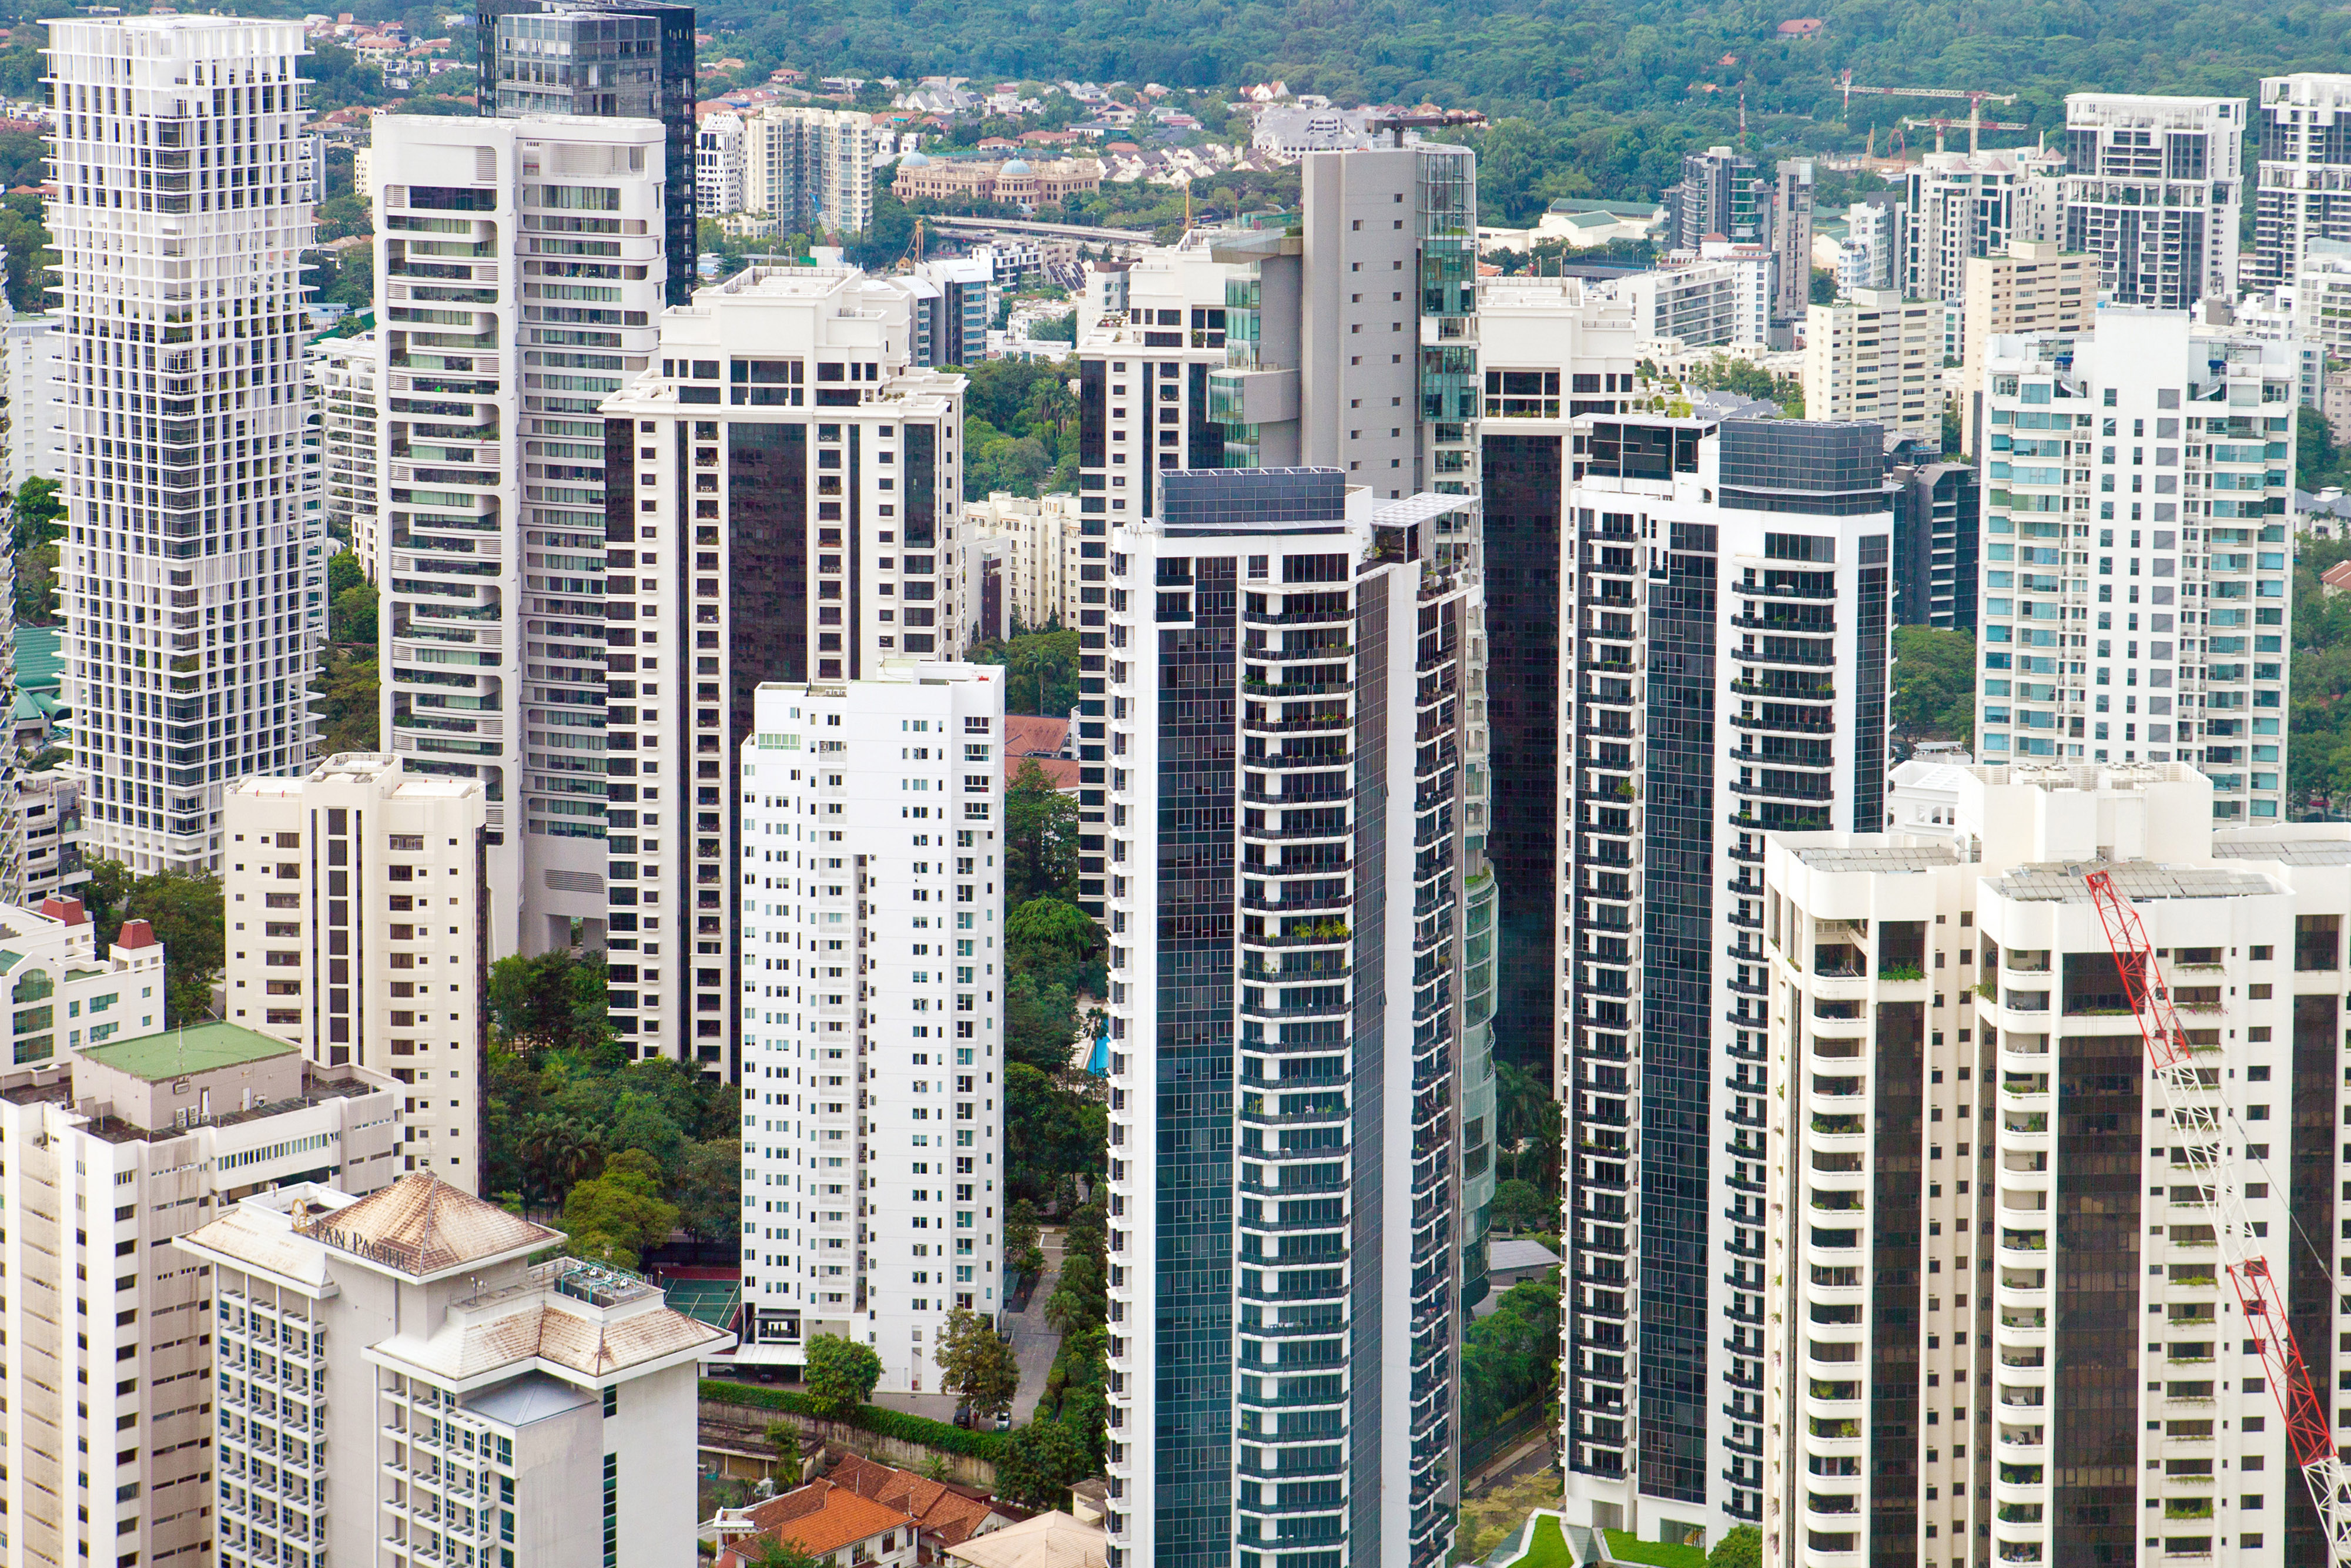 Residential buildings in the Orchard Road area of Singapore | BLOOMBERG